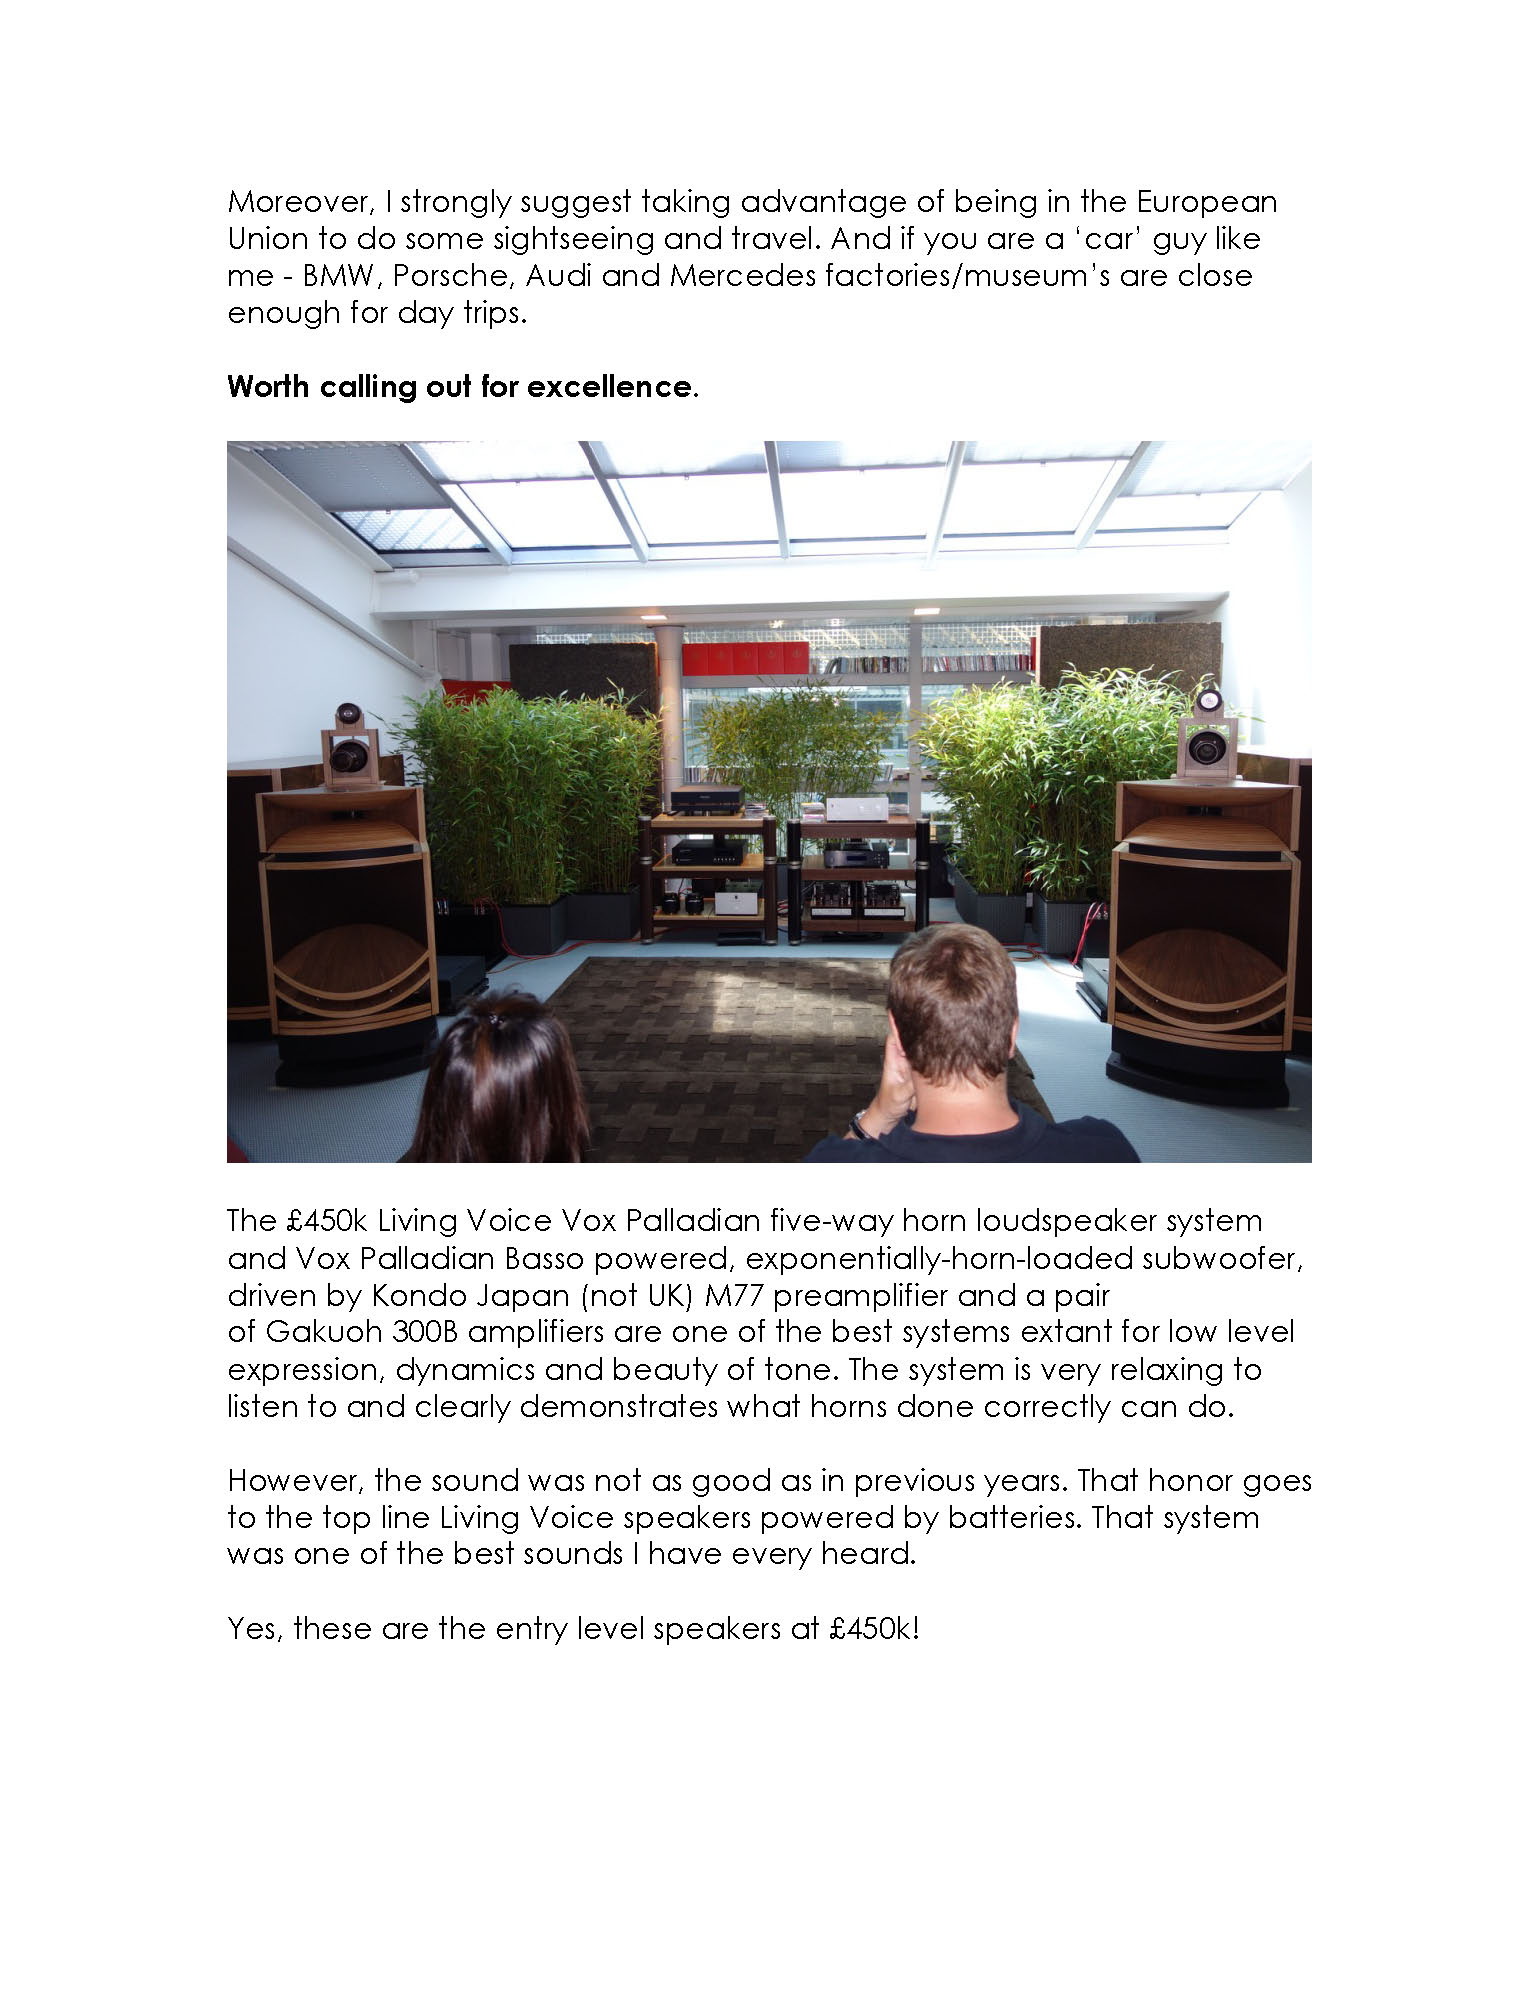 Hi Fi One Munich newsletter_Page_03.jpg